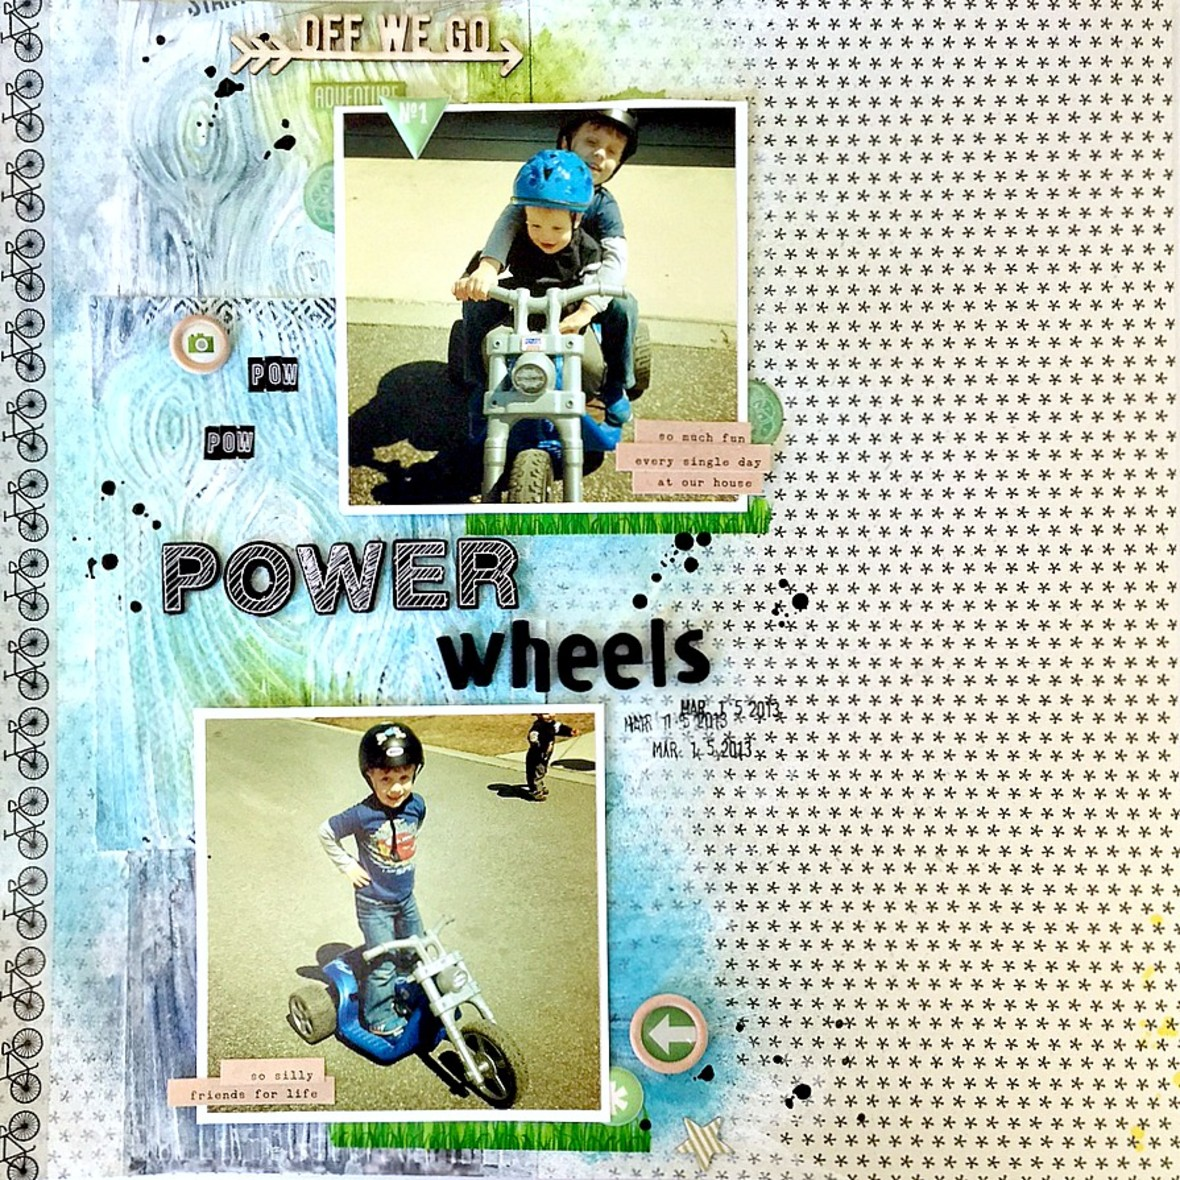 Pow pow power wheels layout   ls original